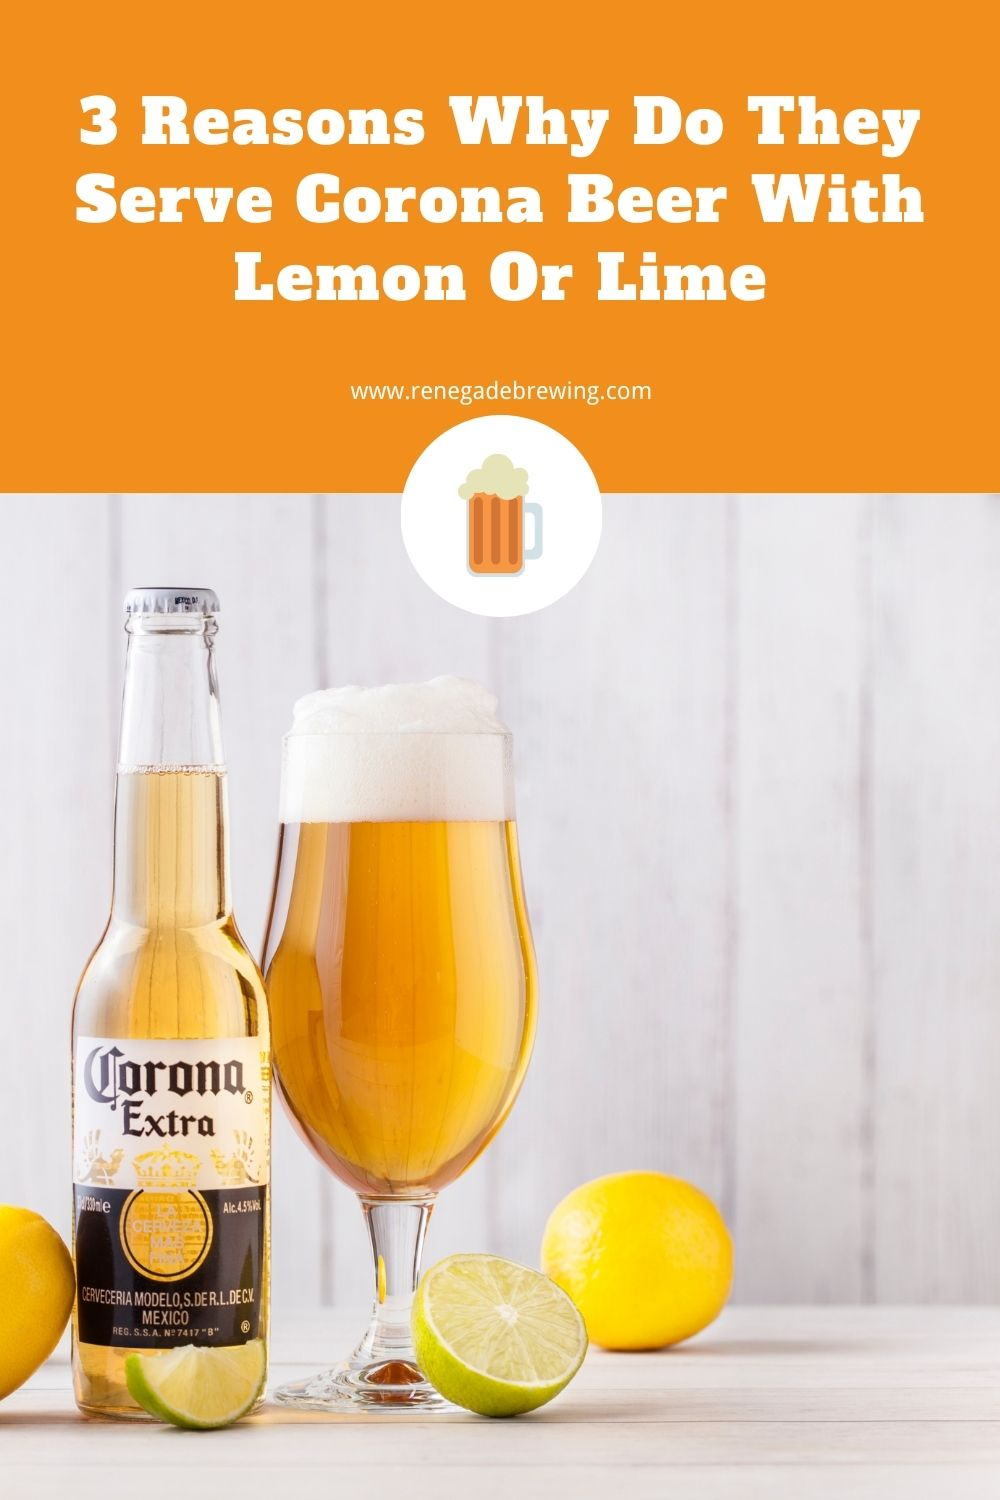 3 Reasons Why Do They Serve Corona Beer with Lemon or Lime 2